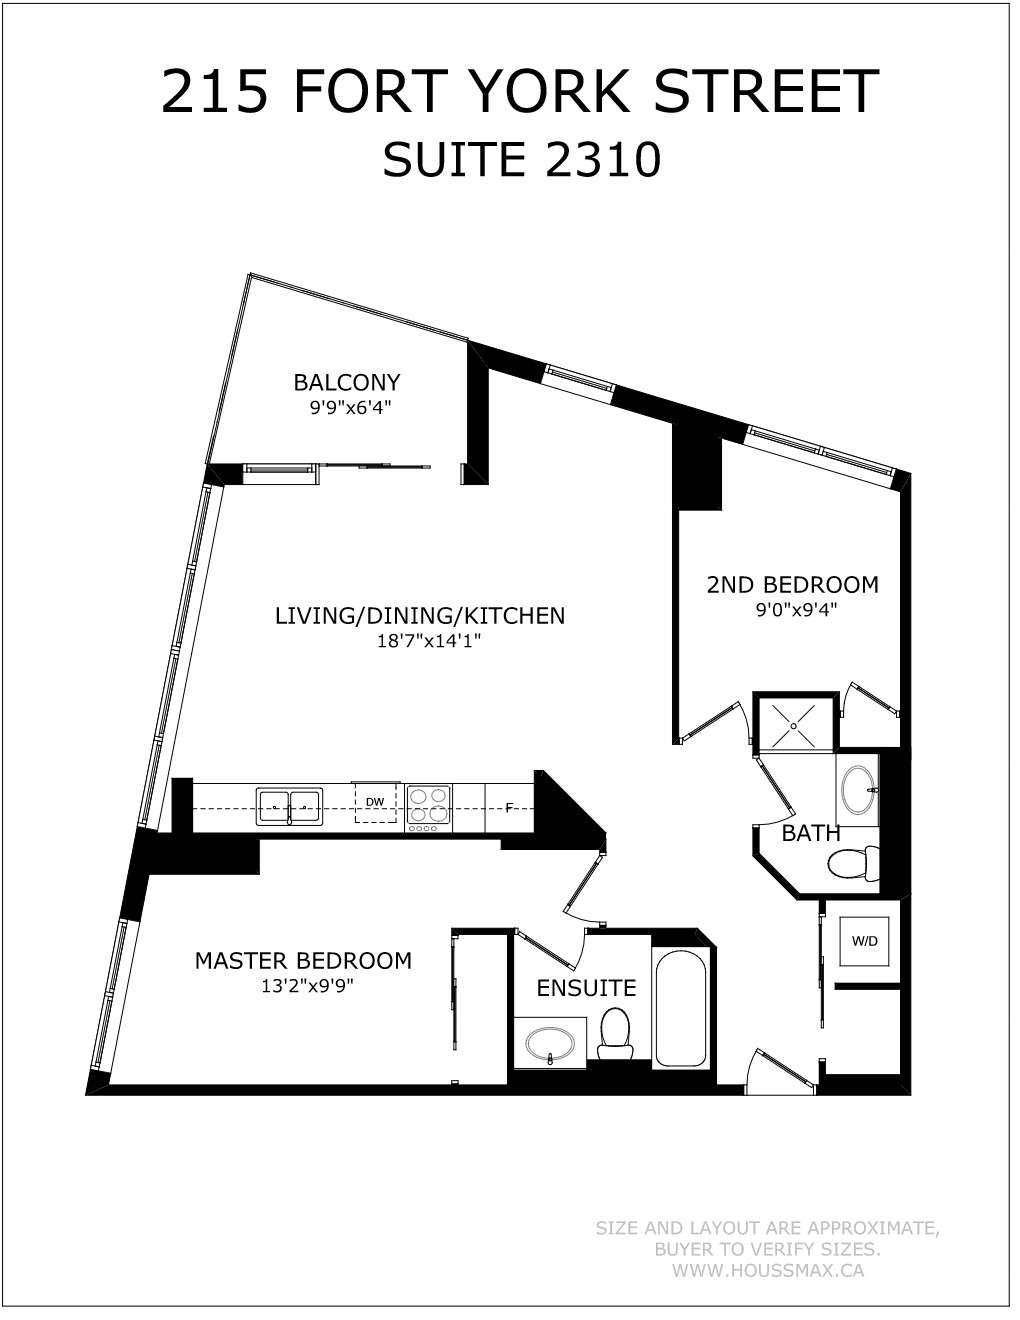 Floor plans for 215 Fort York Blvd Unit 2310.